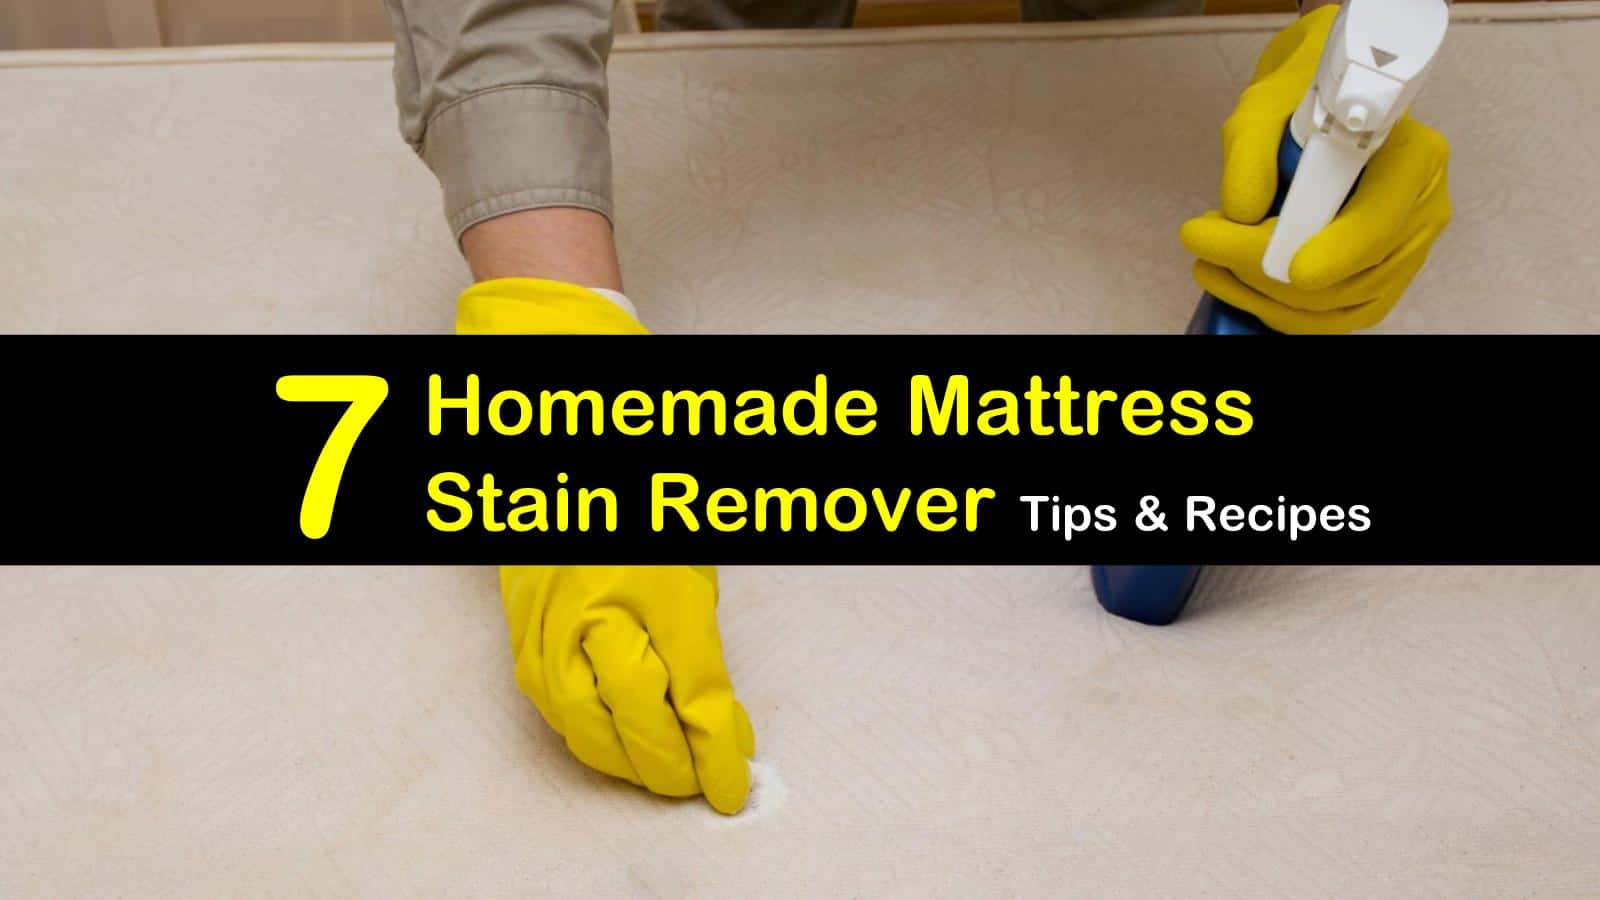 7 Homemade Mattress Stain Remover Recipes